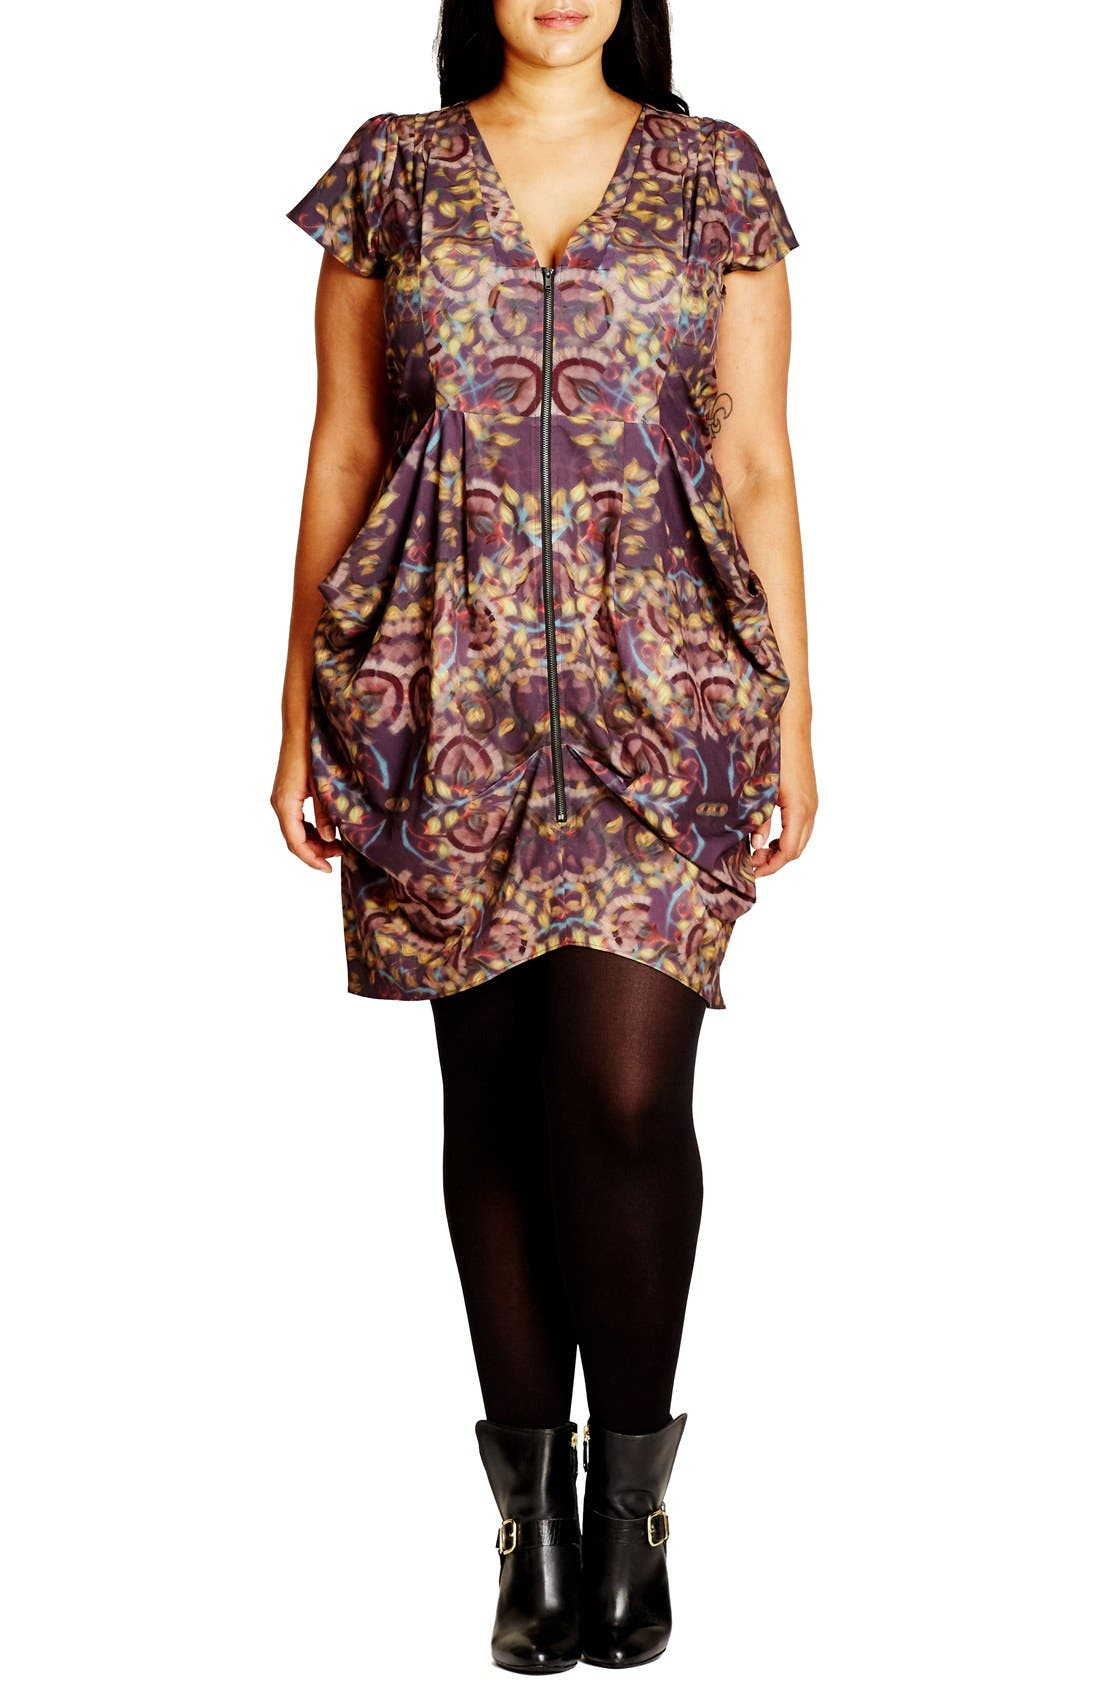 Alternate Image 1 Selected - City Chic 'Blurred Dream' Print Zip Front Pleat Tunic (Plus Size)